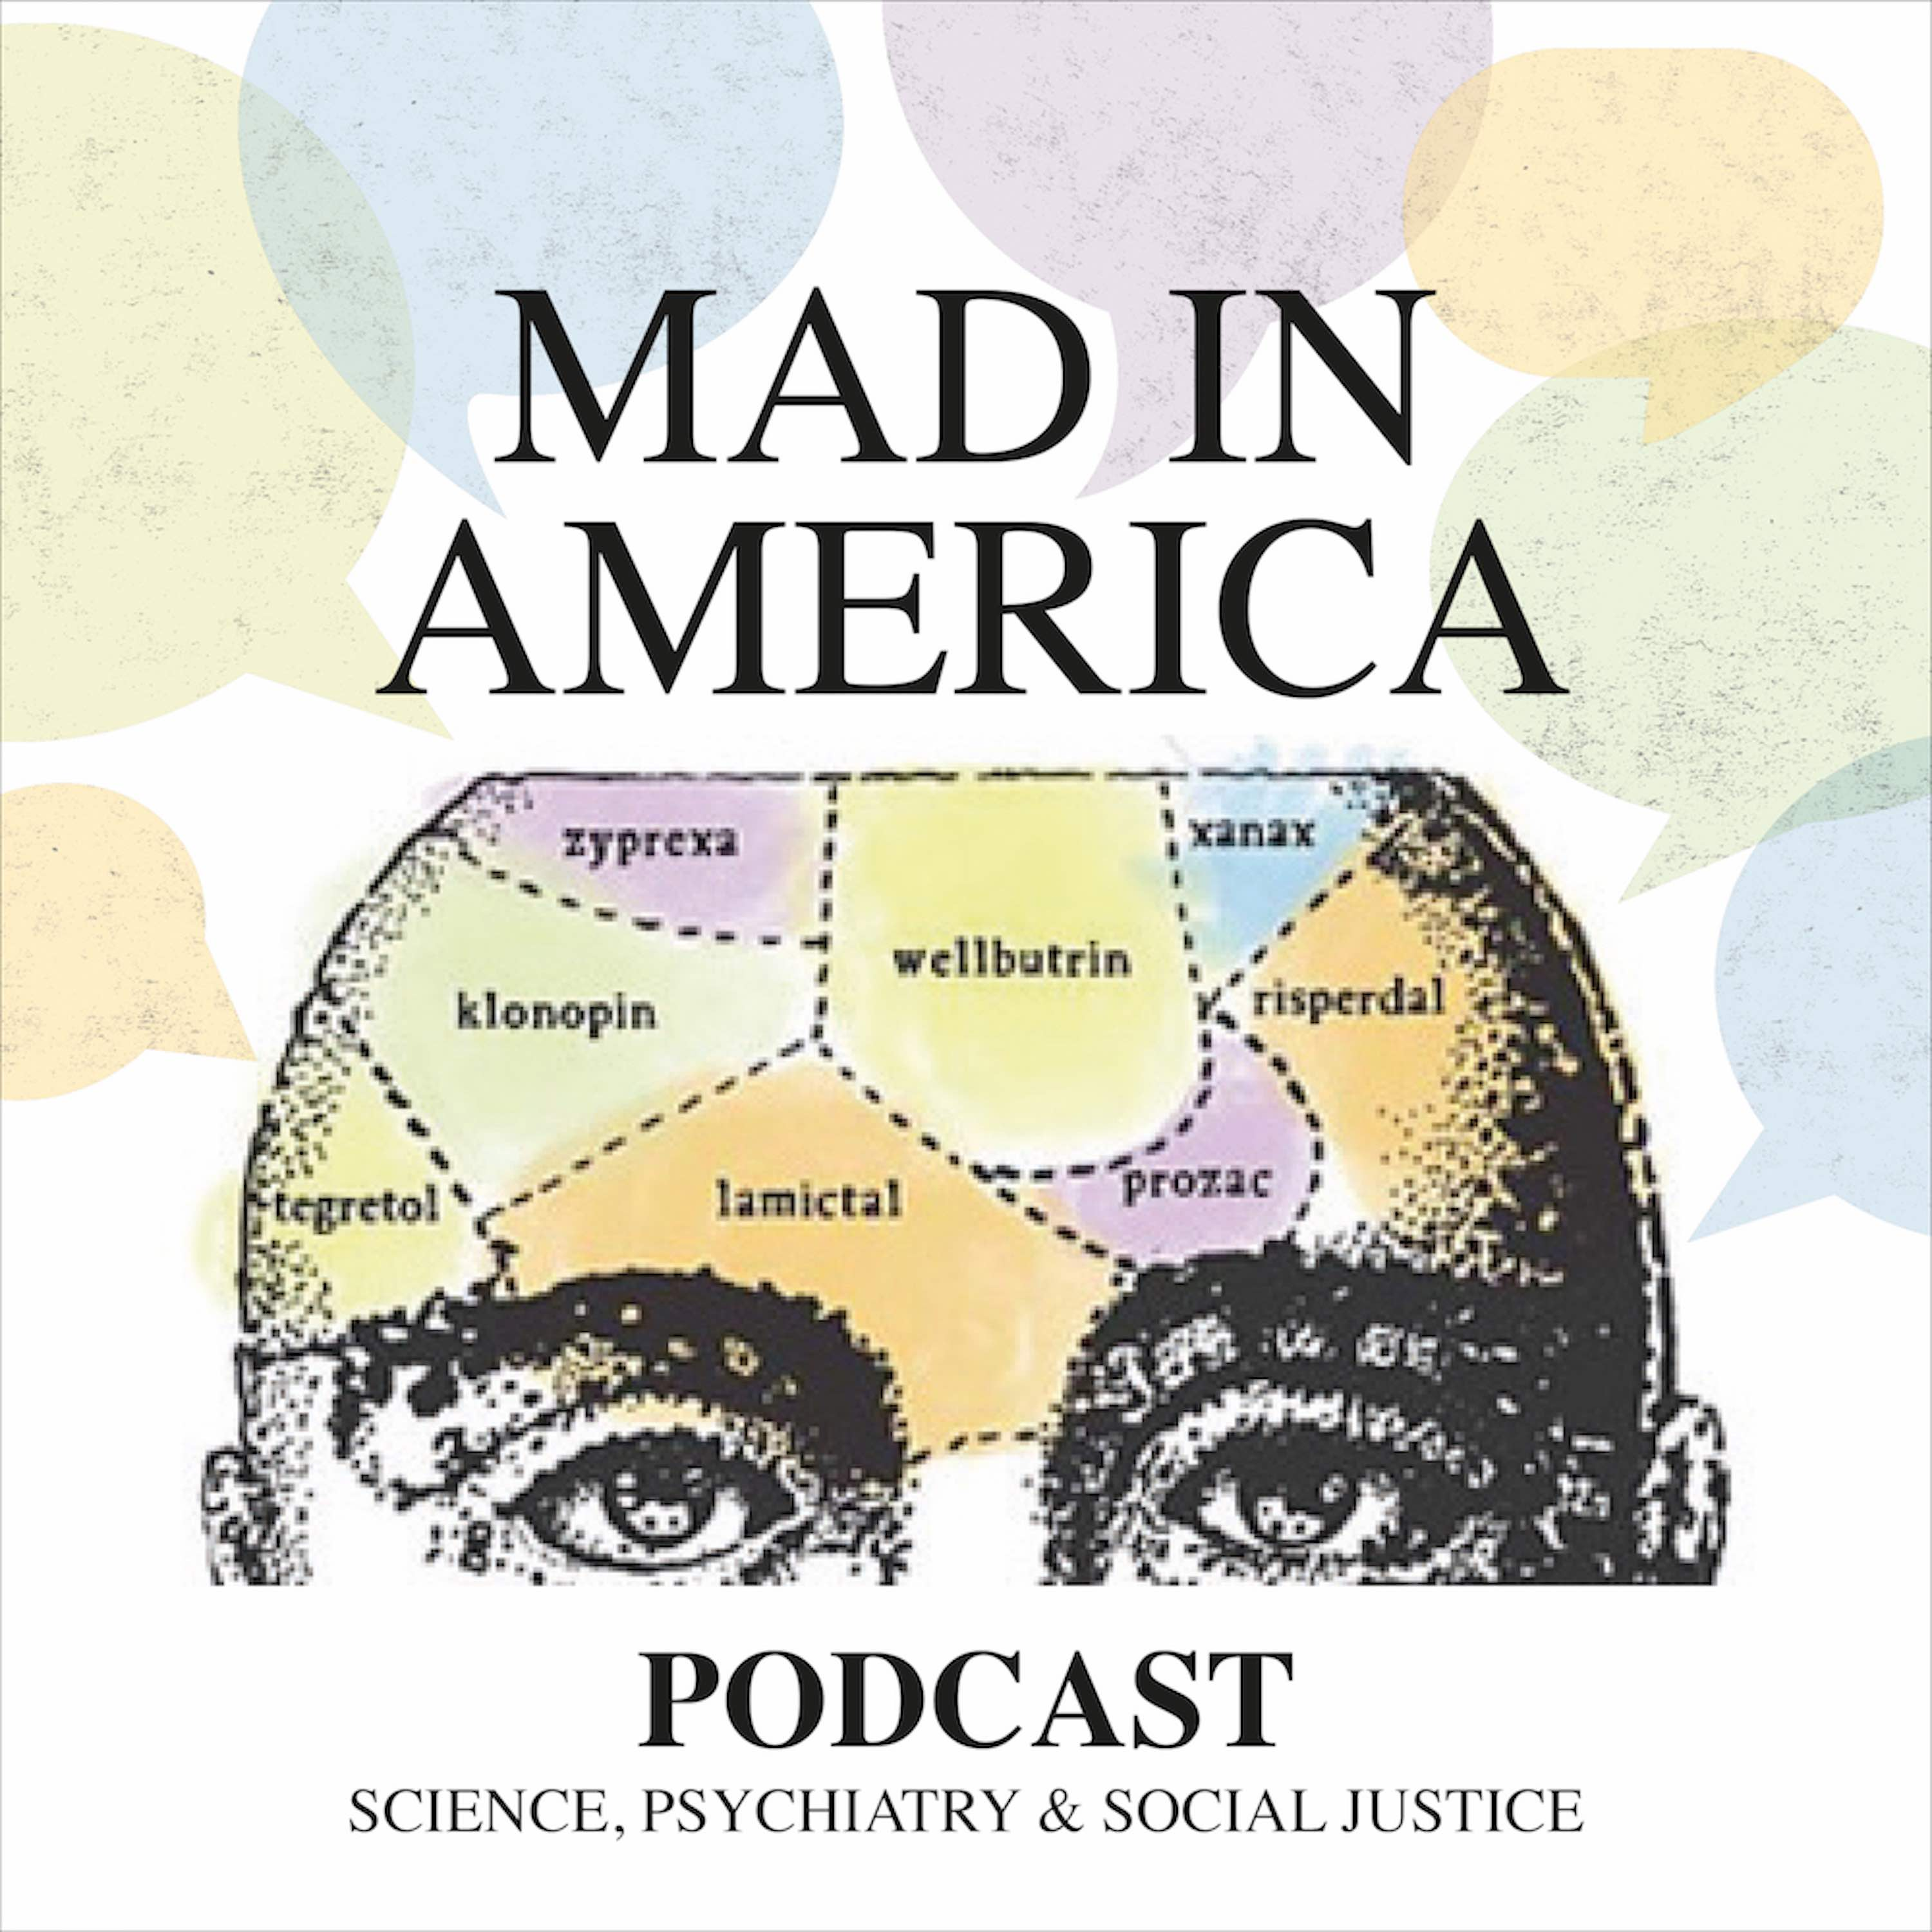 Mad in America: Rethinking Mental Health - Tina Minkowitz - The Abolition of Forced Psychiatric Interventions